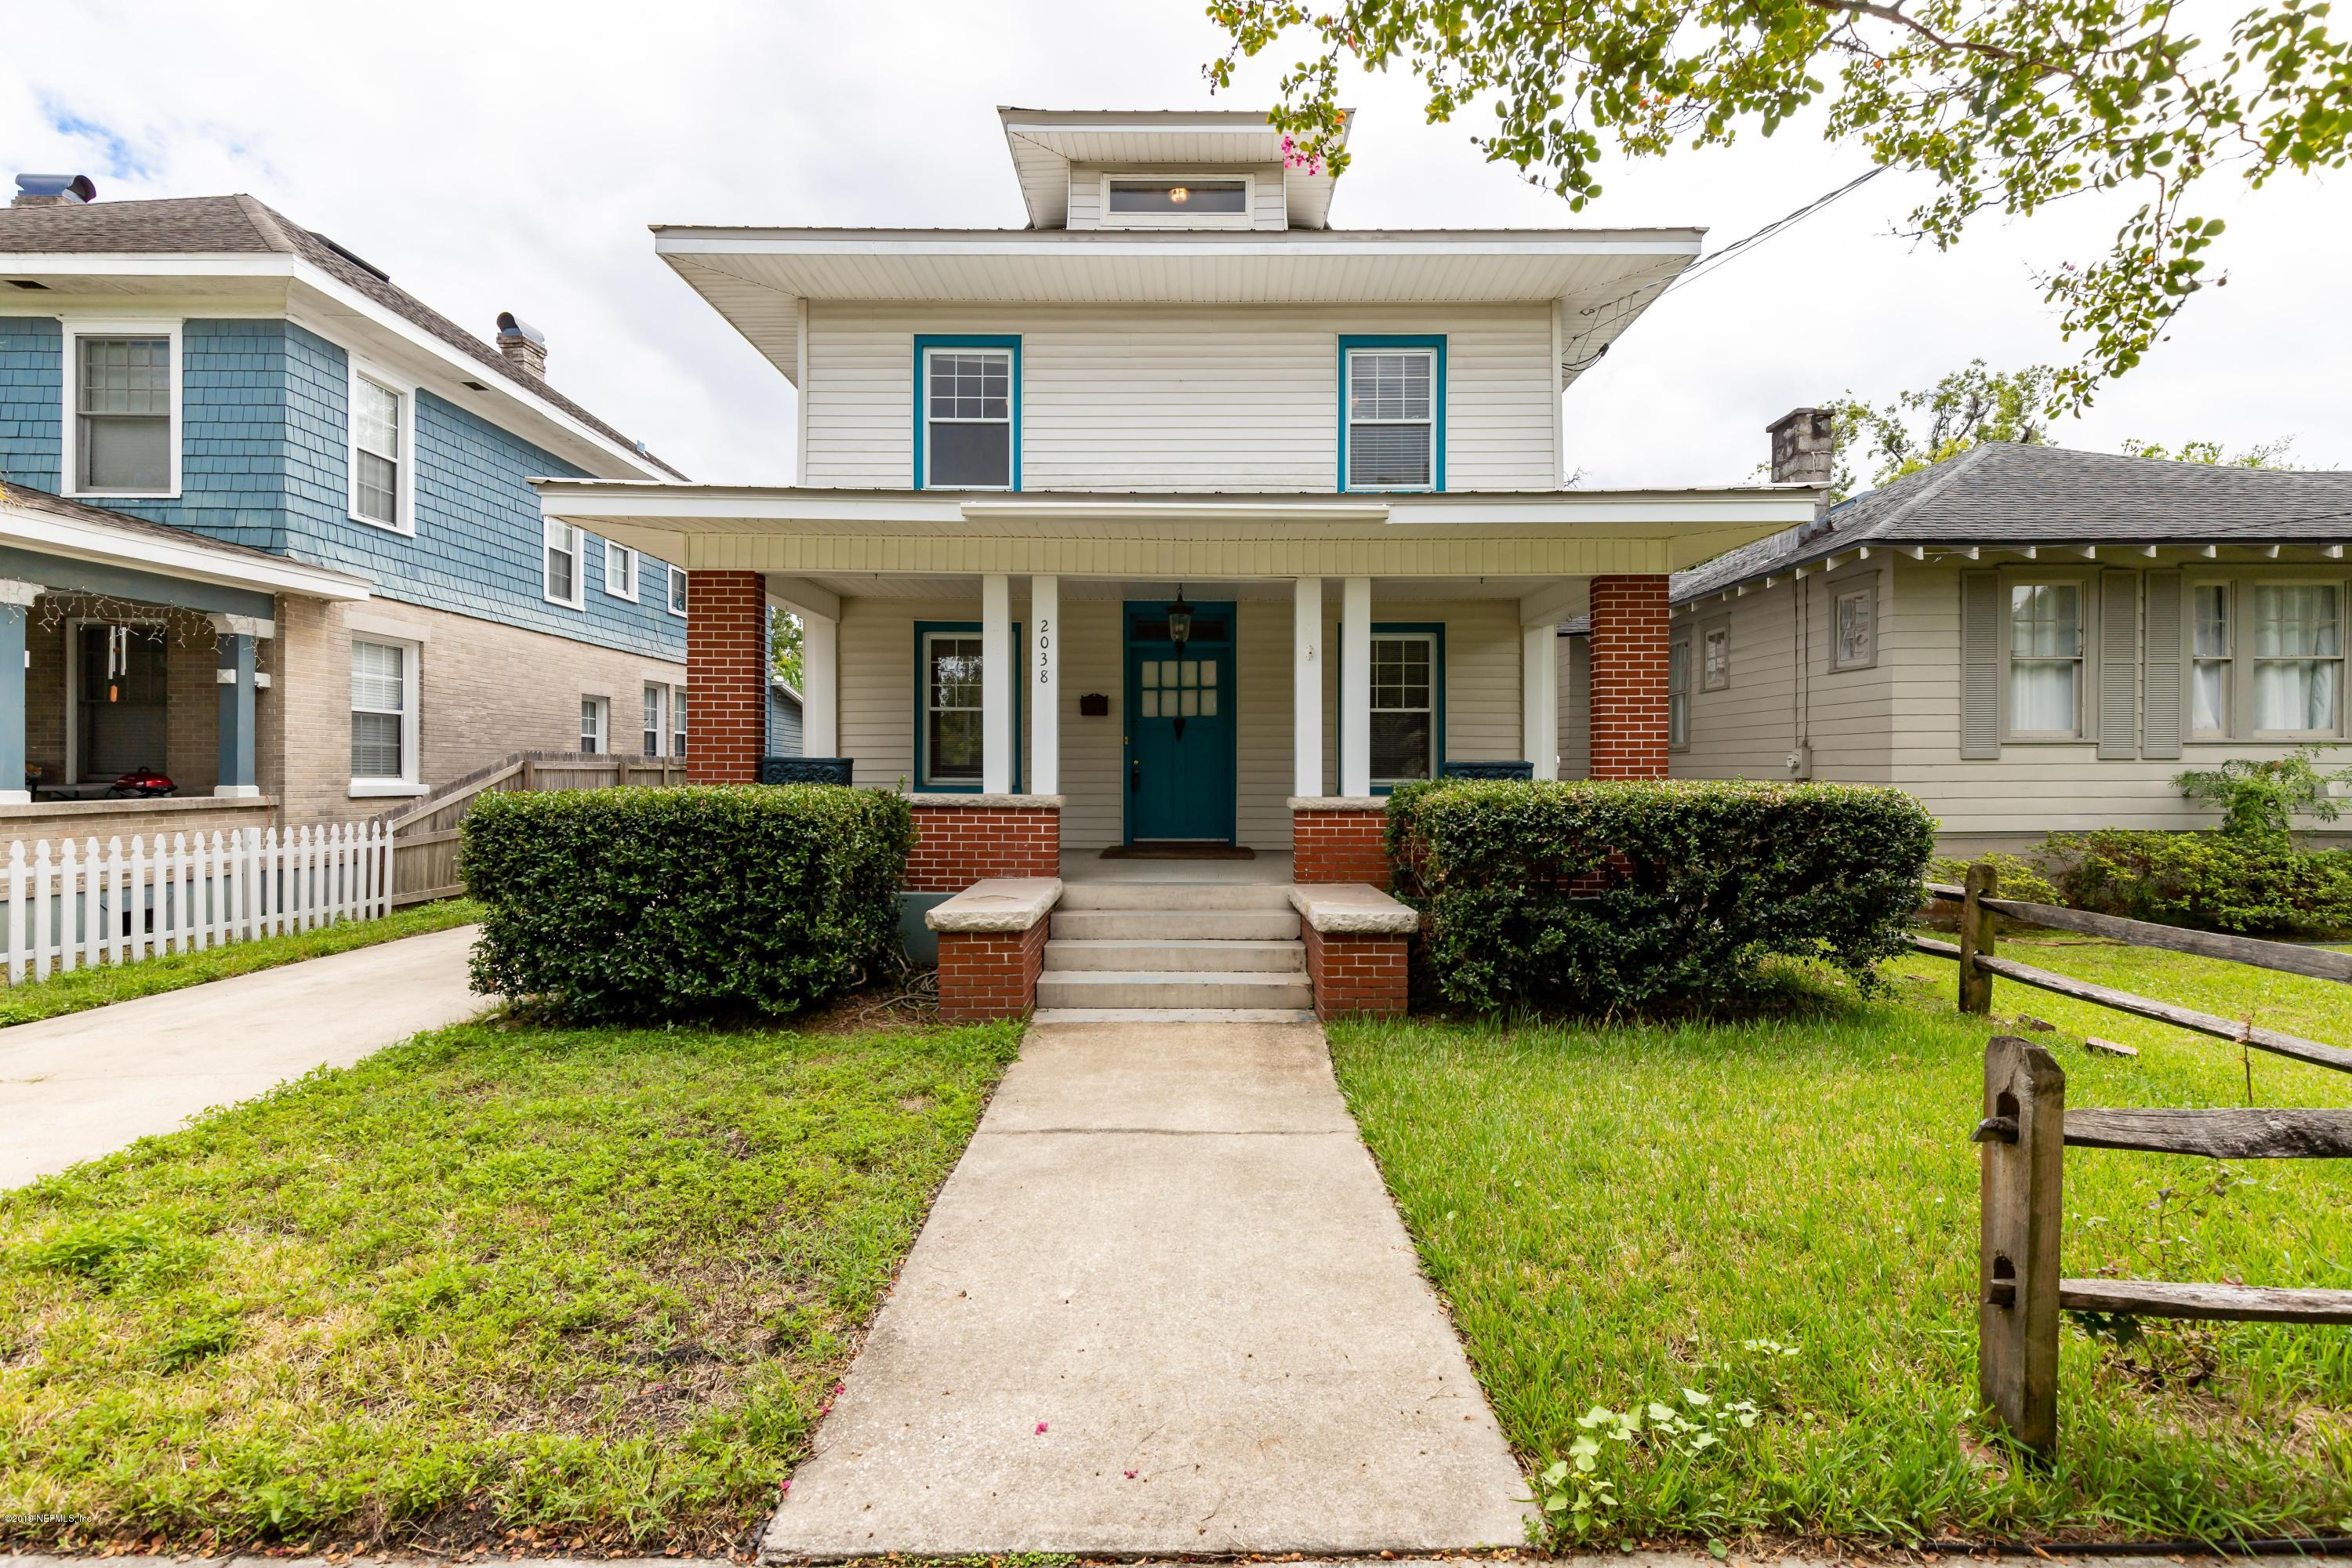 2038 COLLEGE, JACKSONVILLE, FLORIDA 32204, 3 Bedrooms Bedrooms, ,2 BathroomsBathrooms,Residential - single family,For sale,COLLEGE,1011652